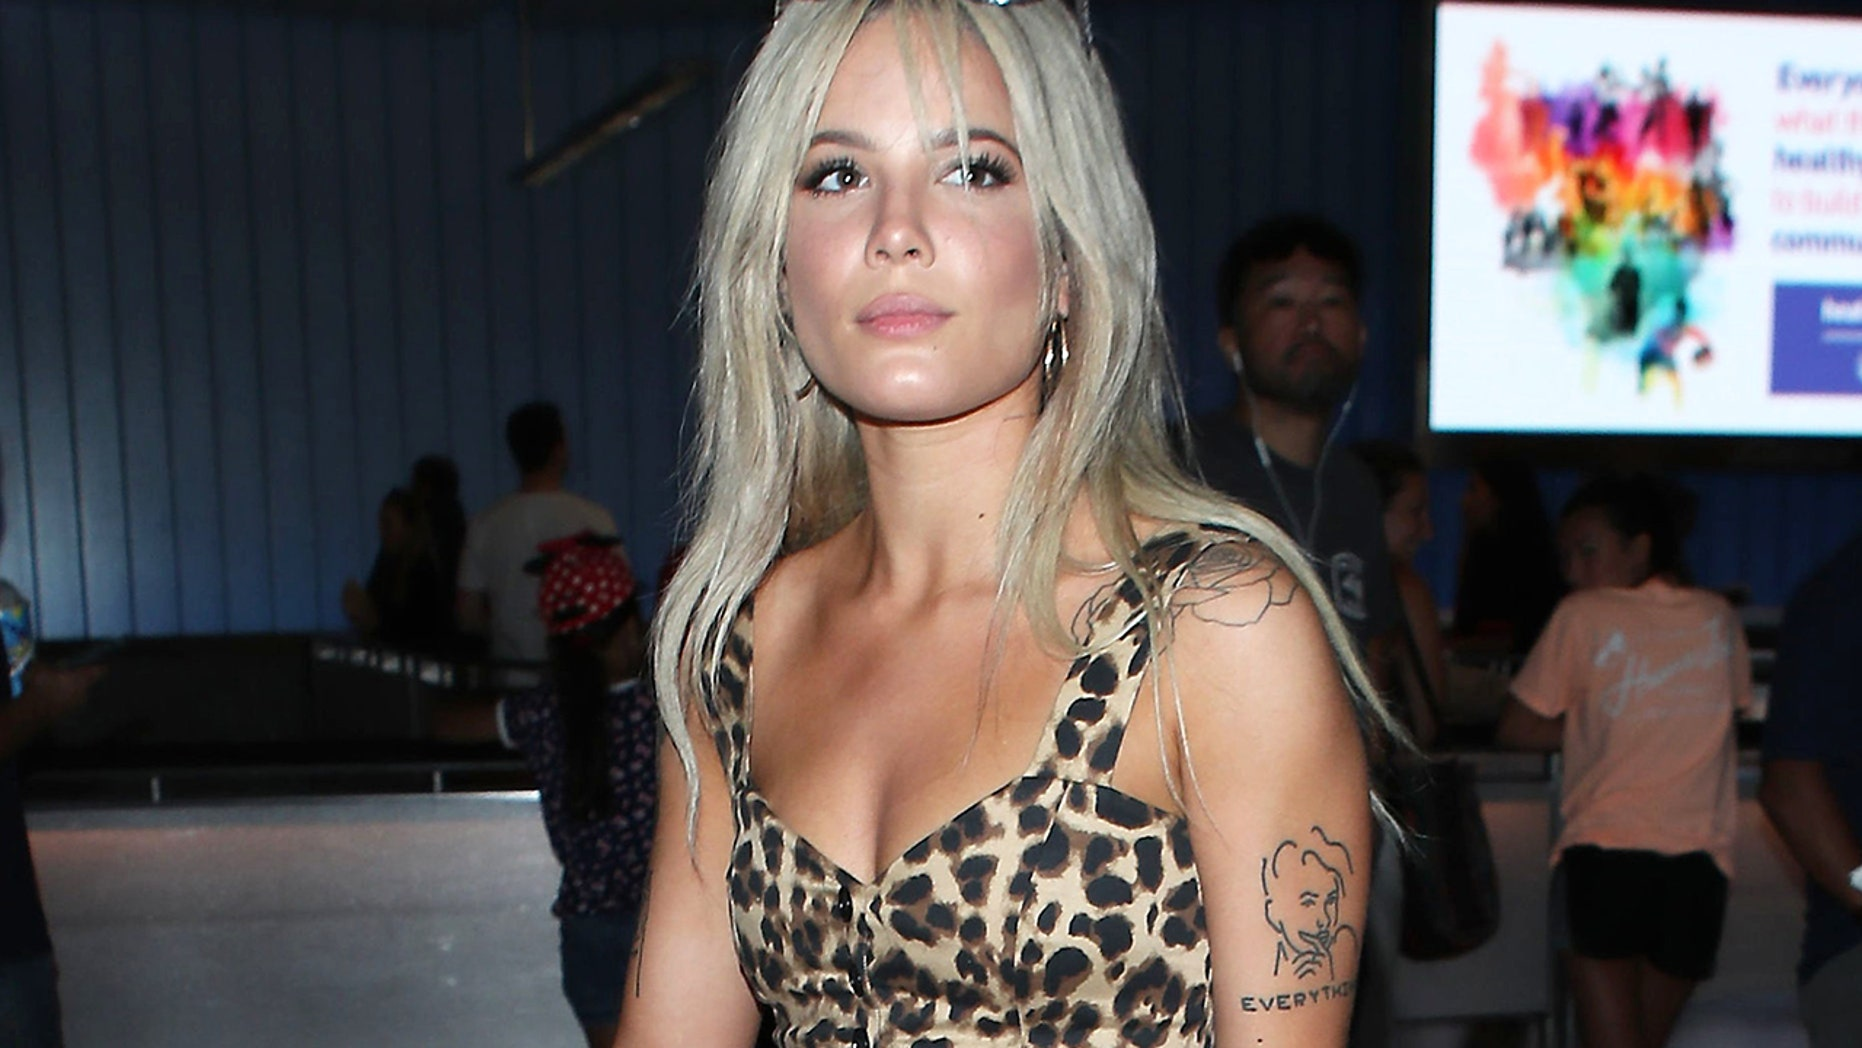 """Halsey arrives in Los Angeles after performing in Santiago, Chile in June 2018. The """"Eyes Open"""" singer puts her perfect, tan body on display in a tiny leopard-print top, paired with cheeky denim cutoffs and black cowboy boots."""